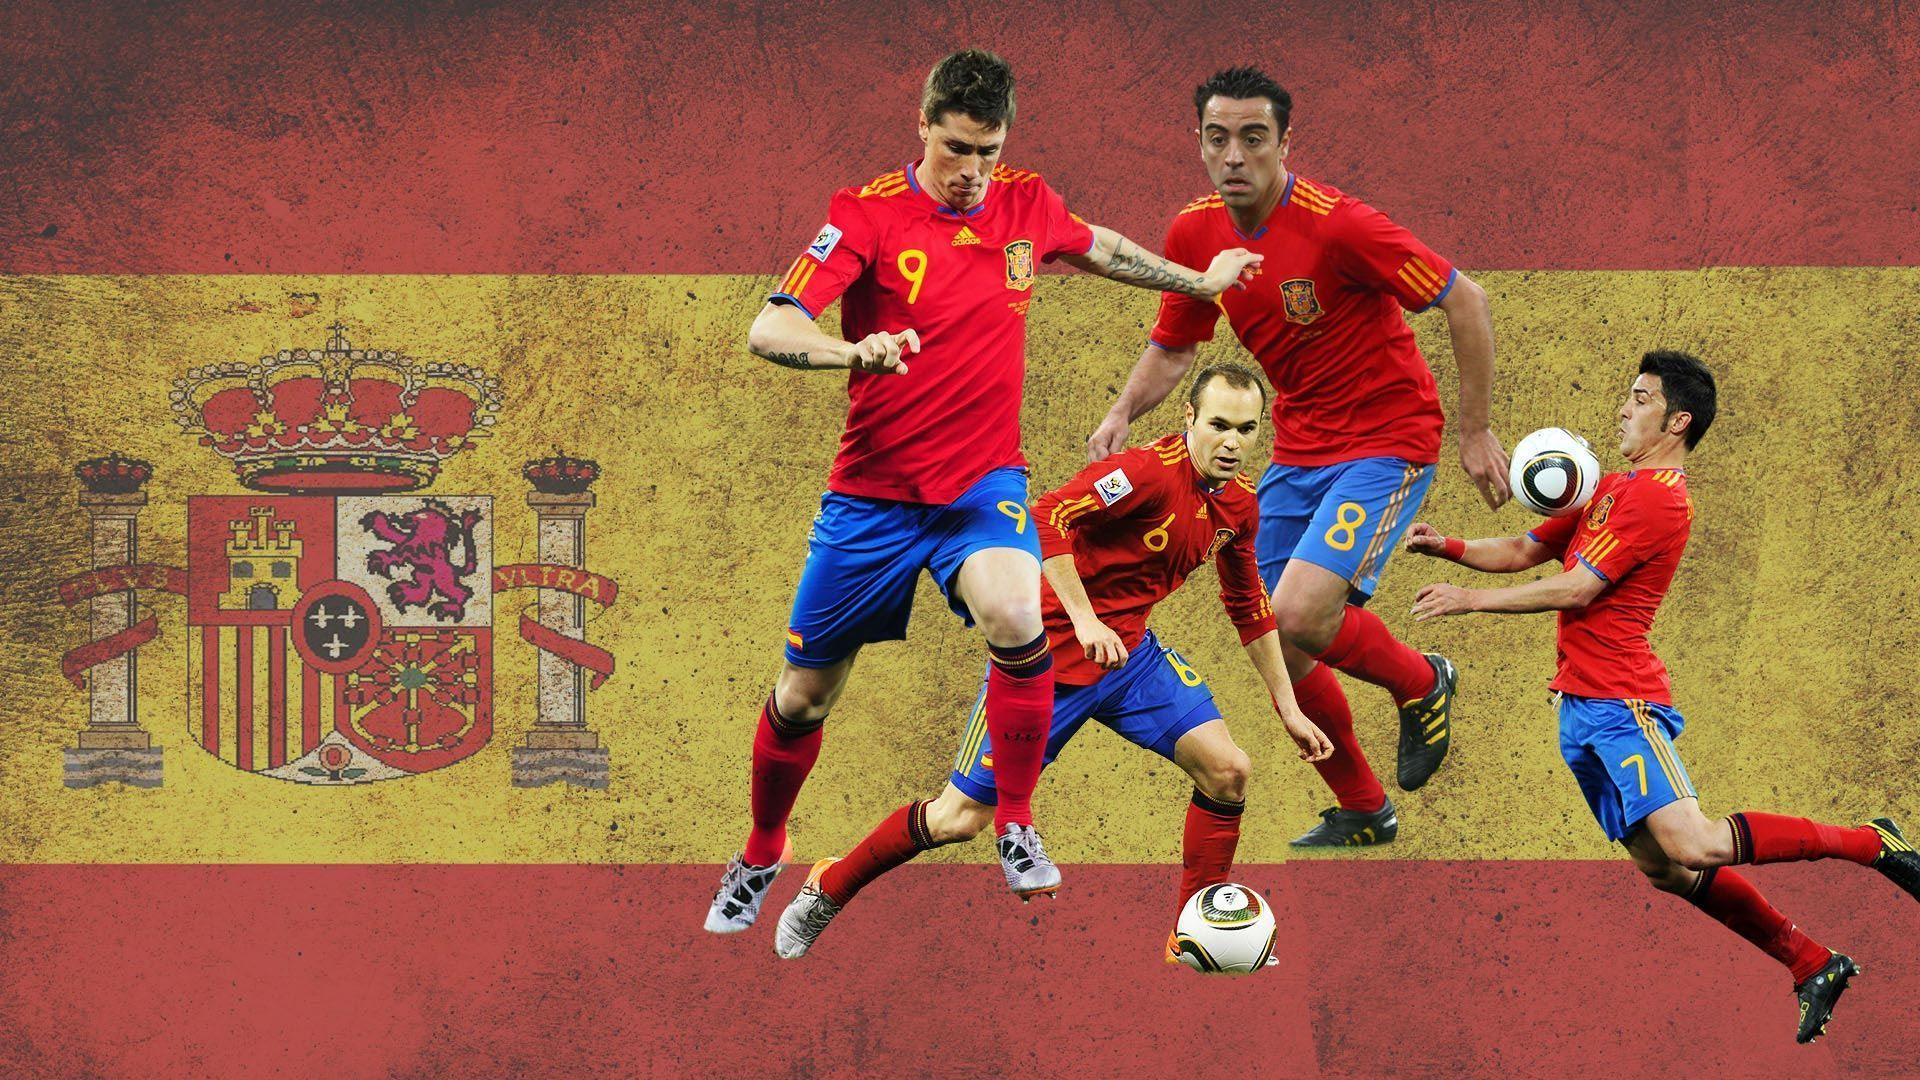 Spain National Team Wallpapers 2016 1920x1080